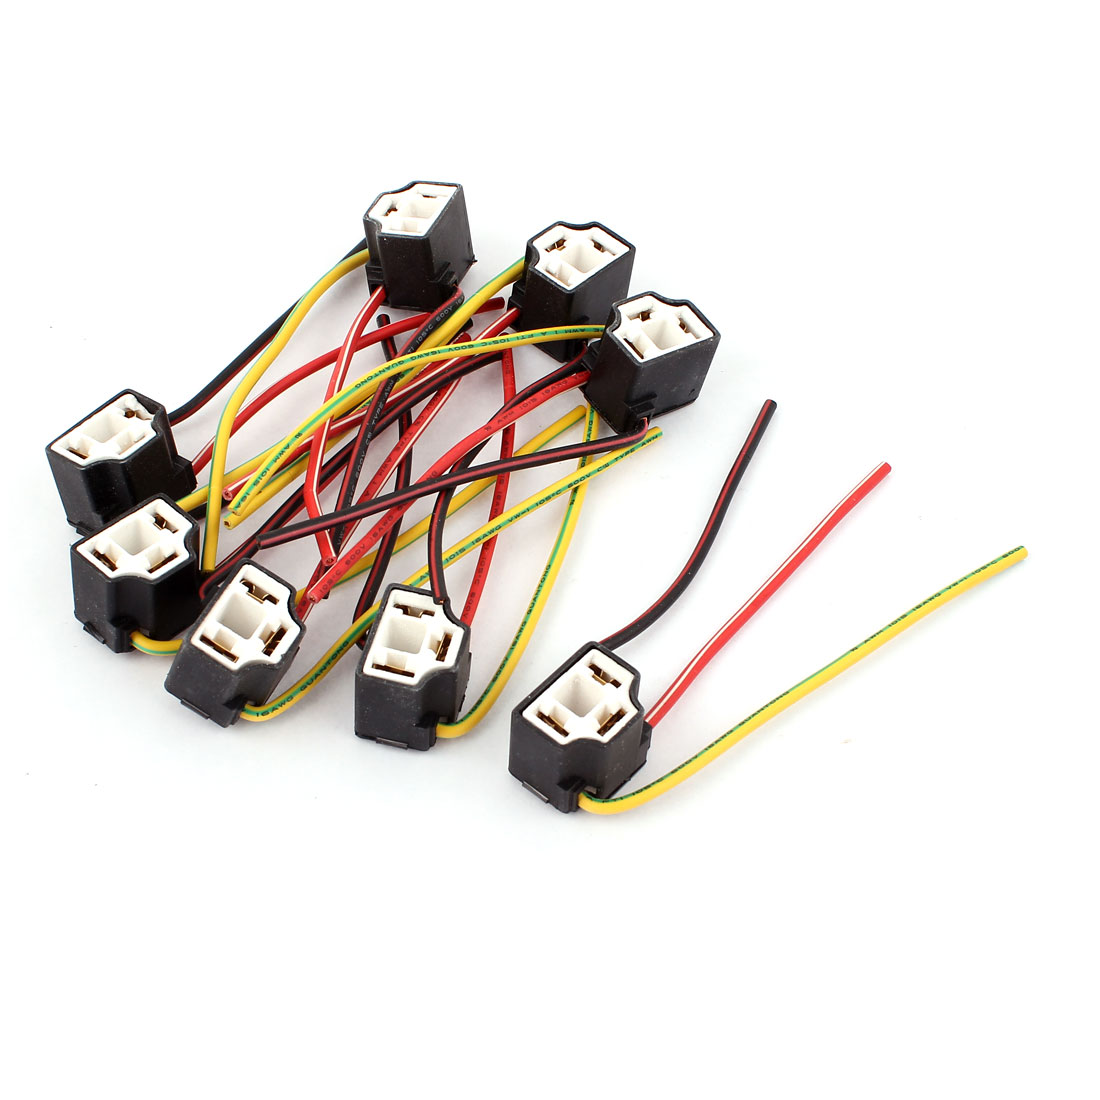 8 Pcs H4 Ceramic Wire Harness Connector Socket for Car Headlights Foglights